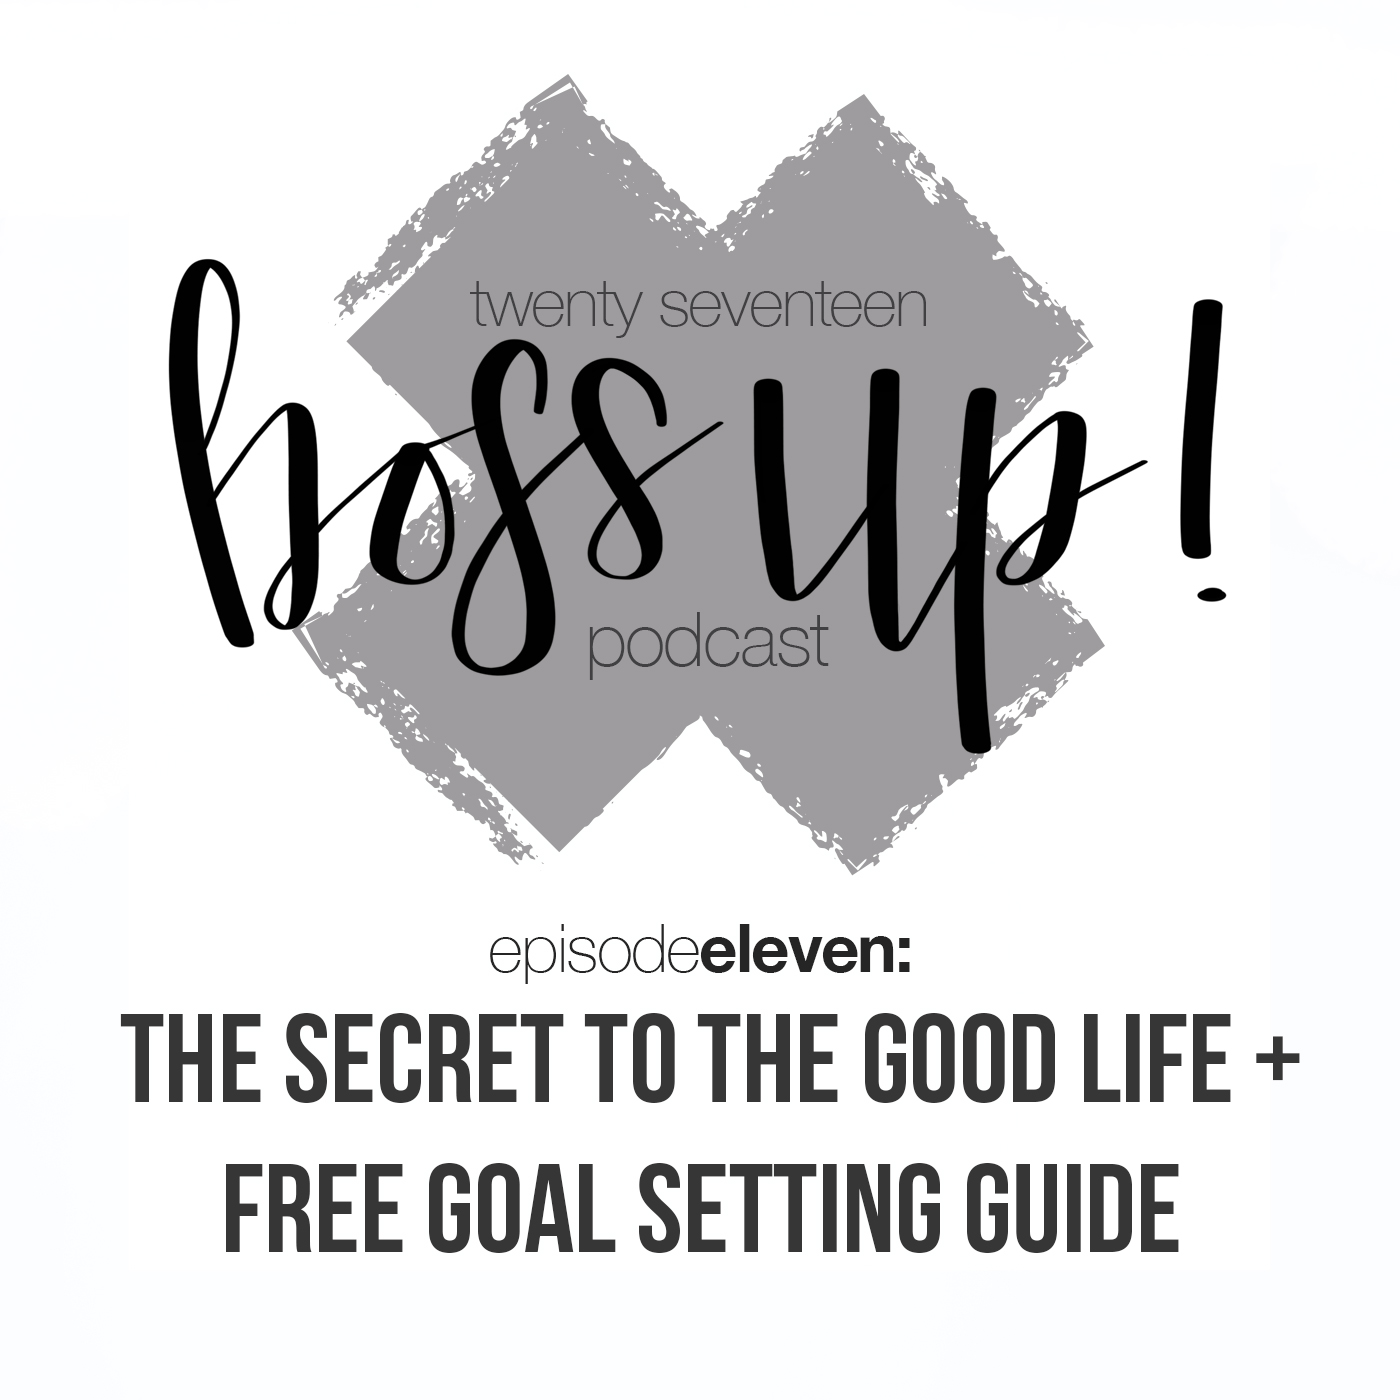 011: Creating Your Good Life + A Free Goal-Setting Guide